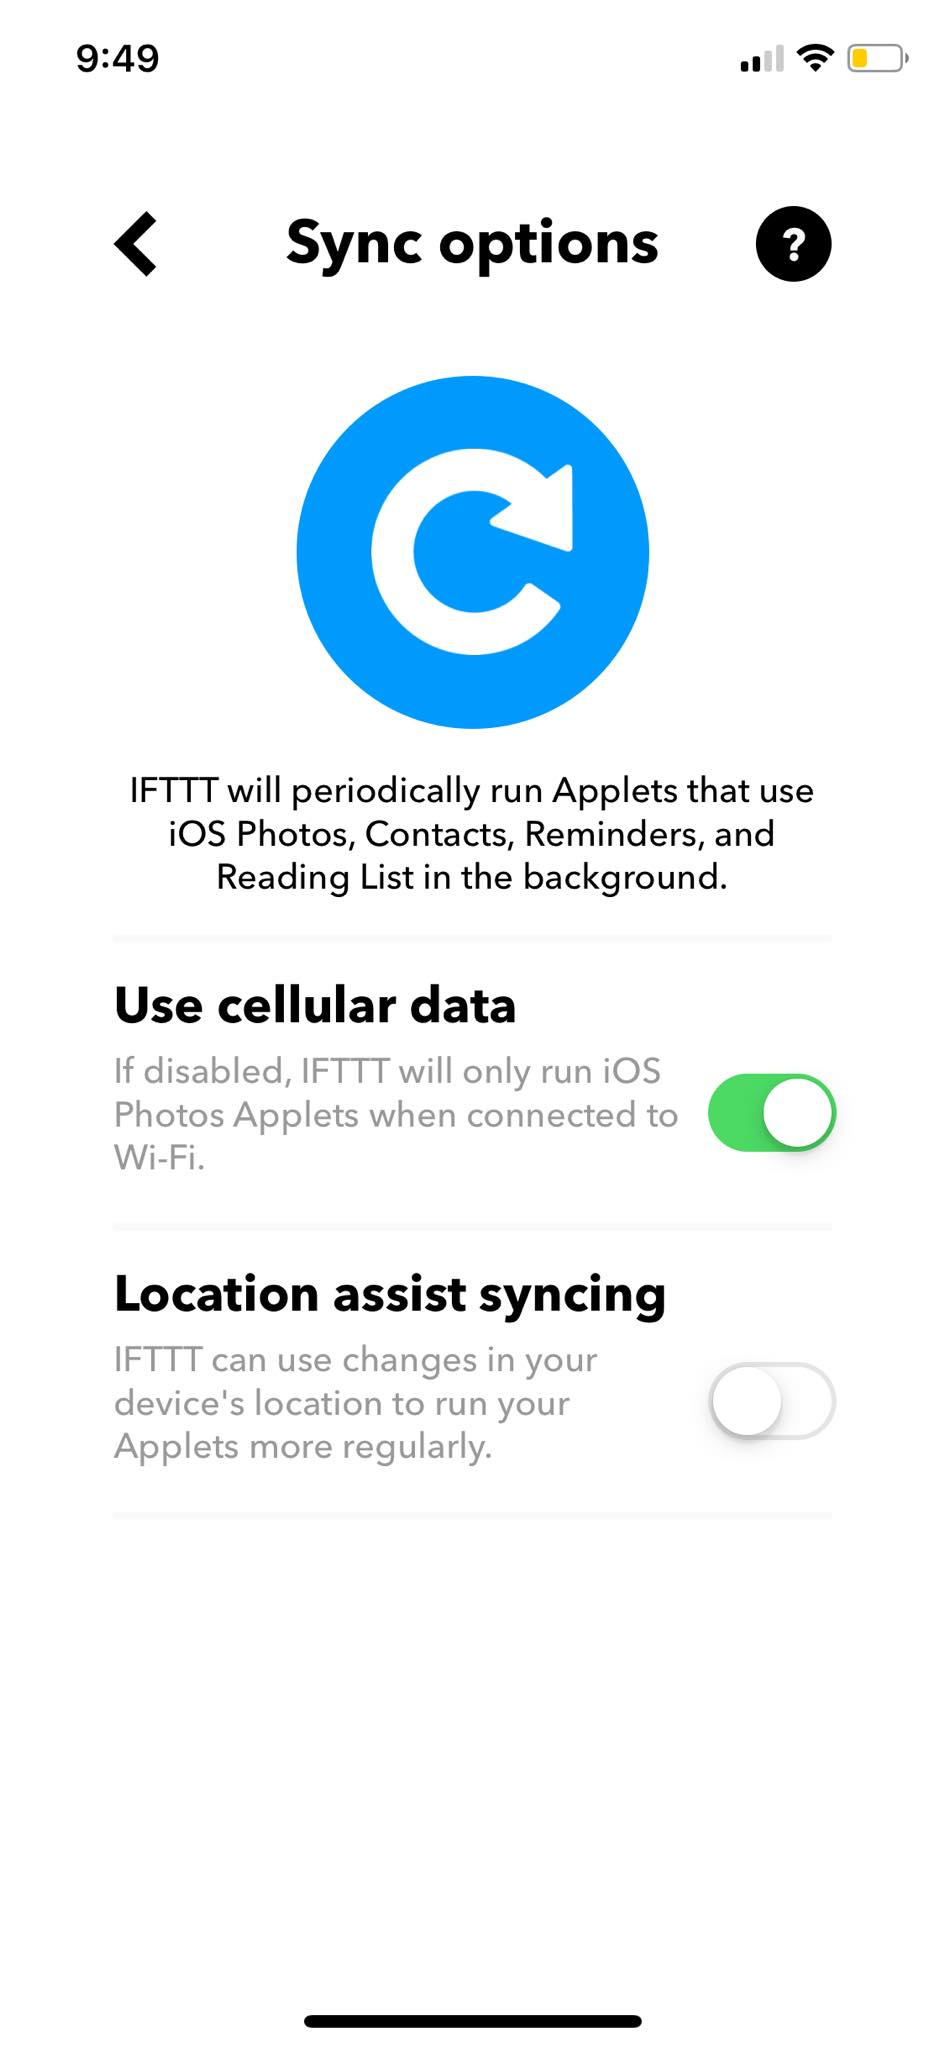 Sync Options on iOS by IFTTT